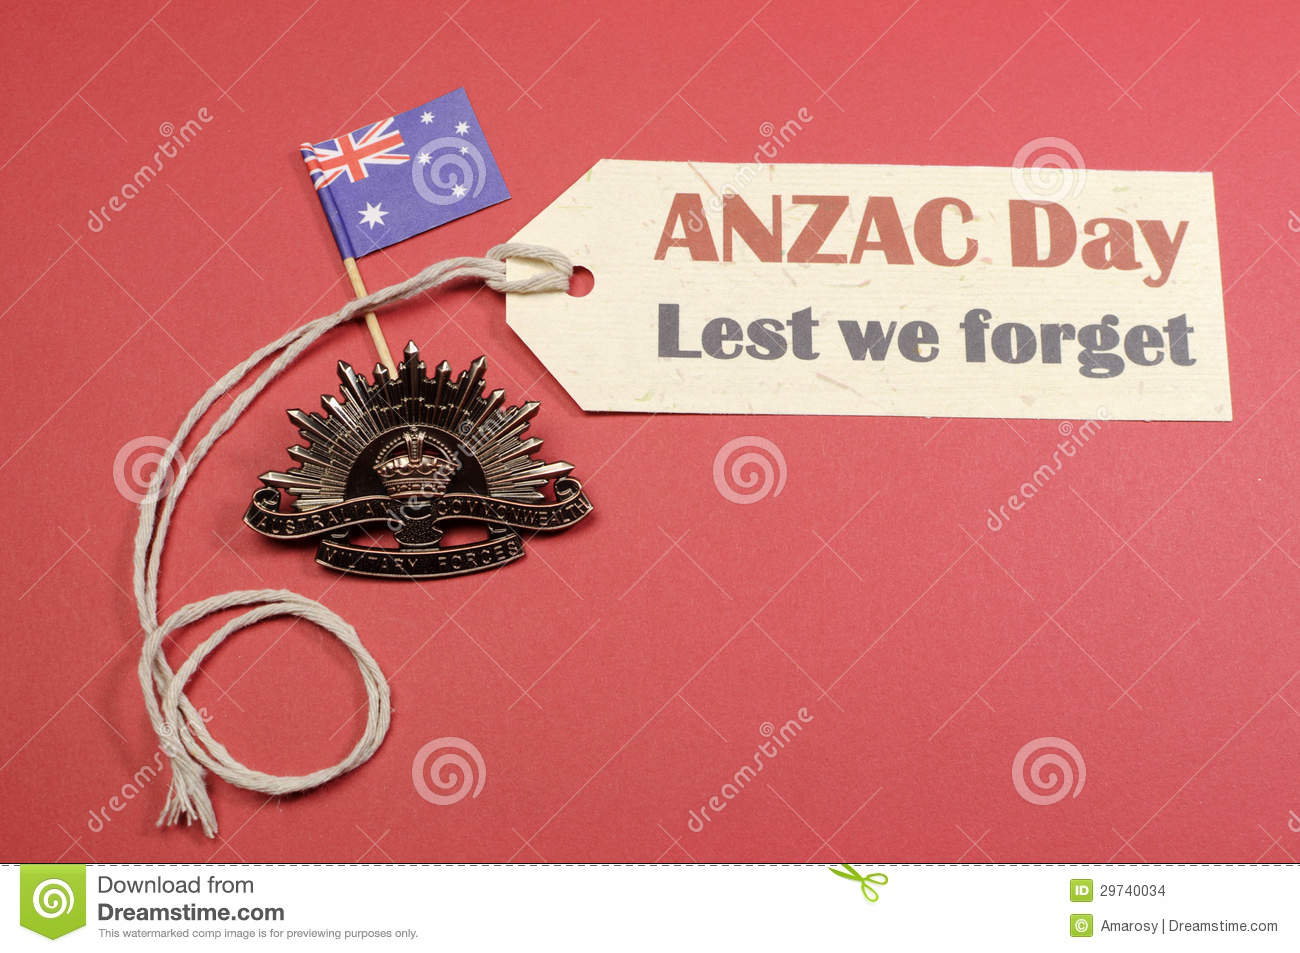 Australian ANZAC Day WW1 Rising Sun Hat Badge with flag and Lest We Forget message